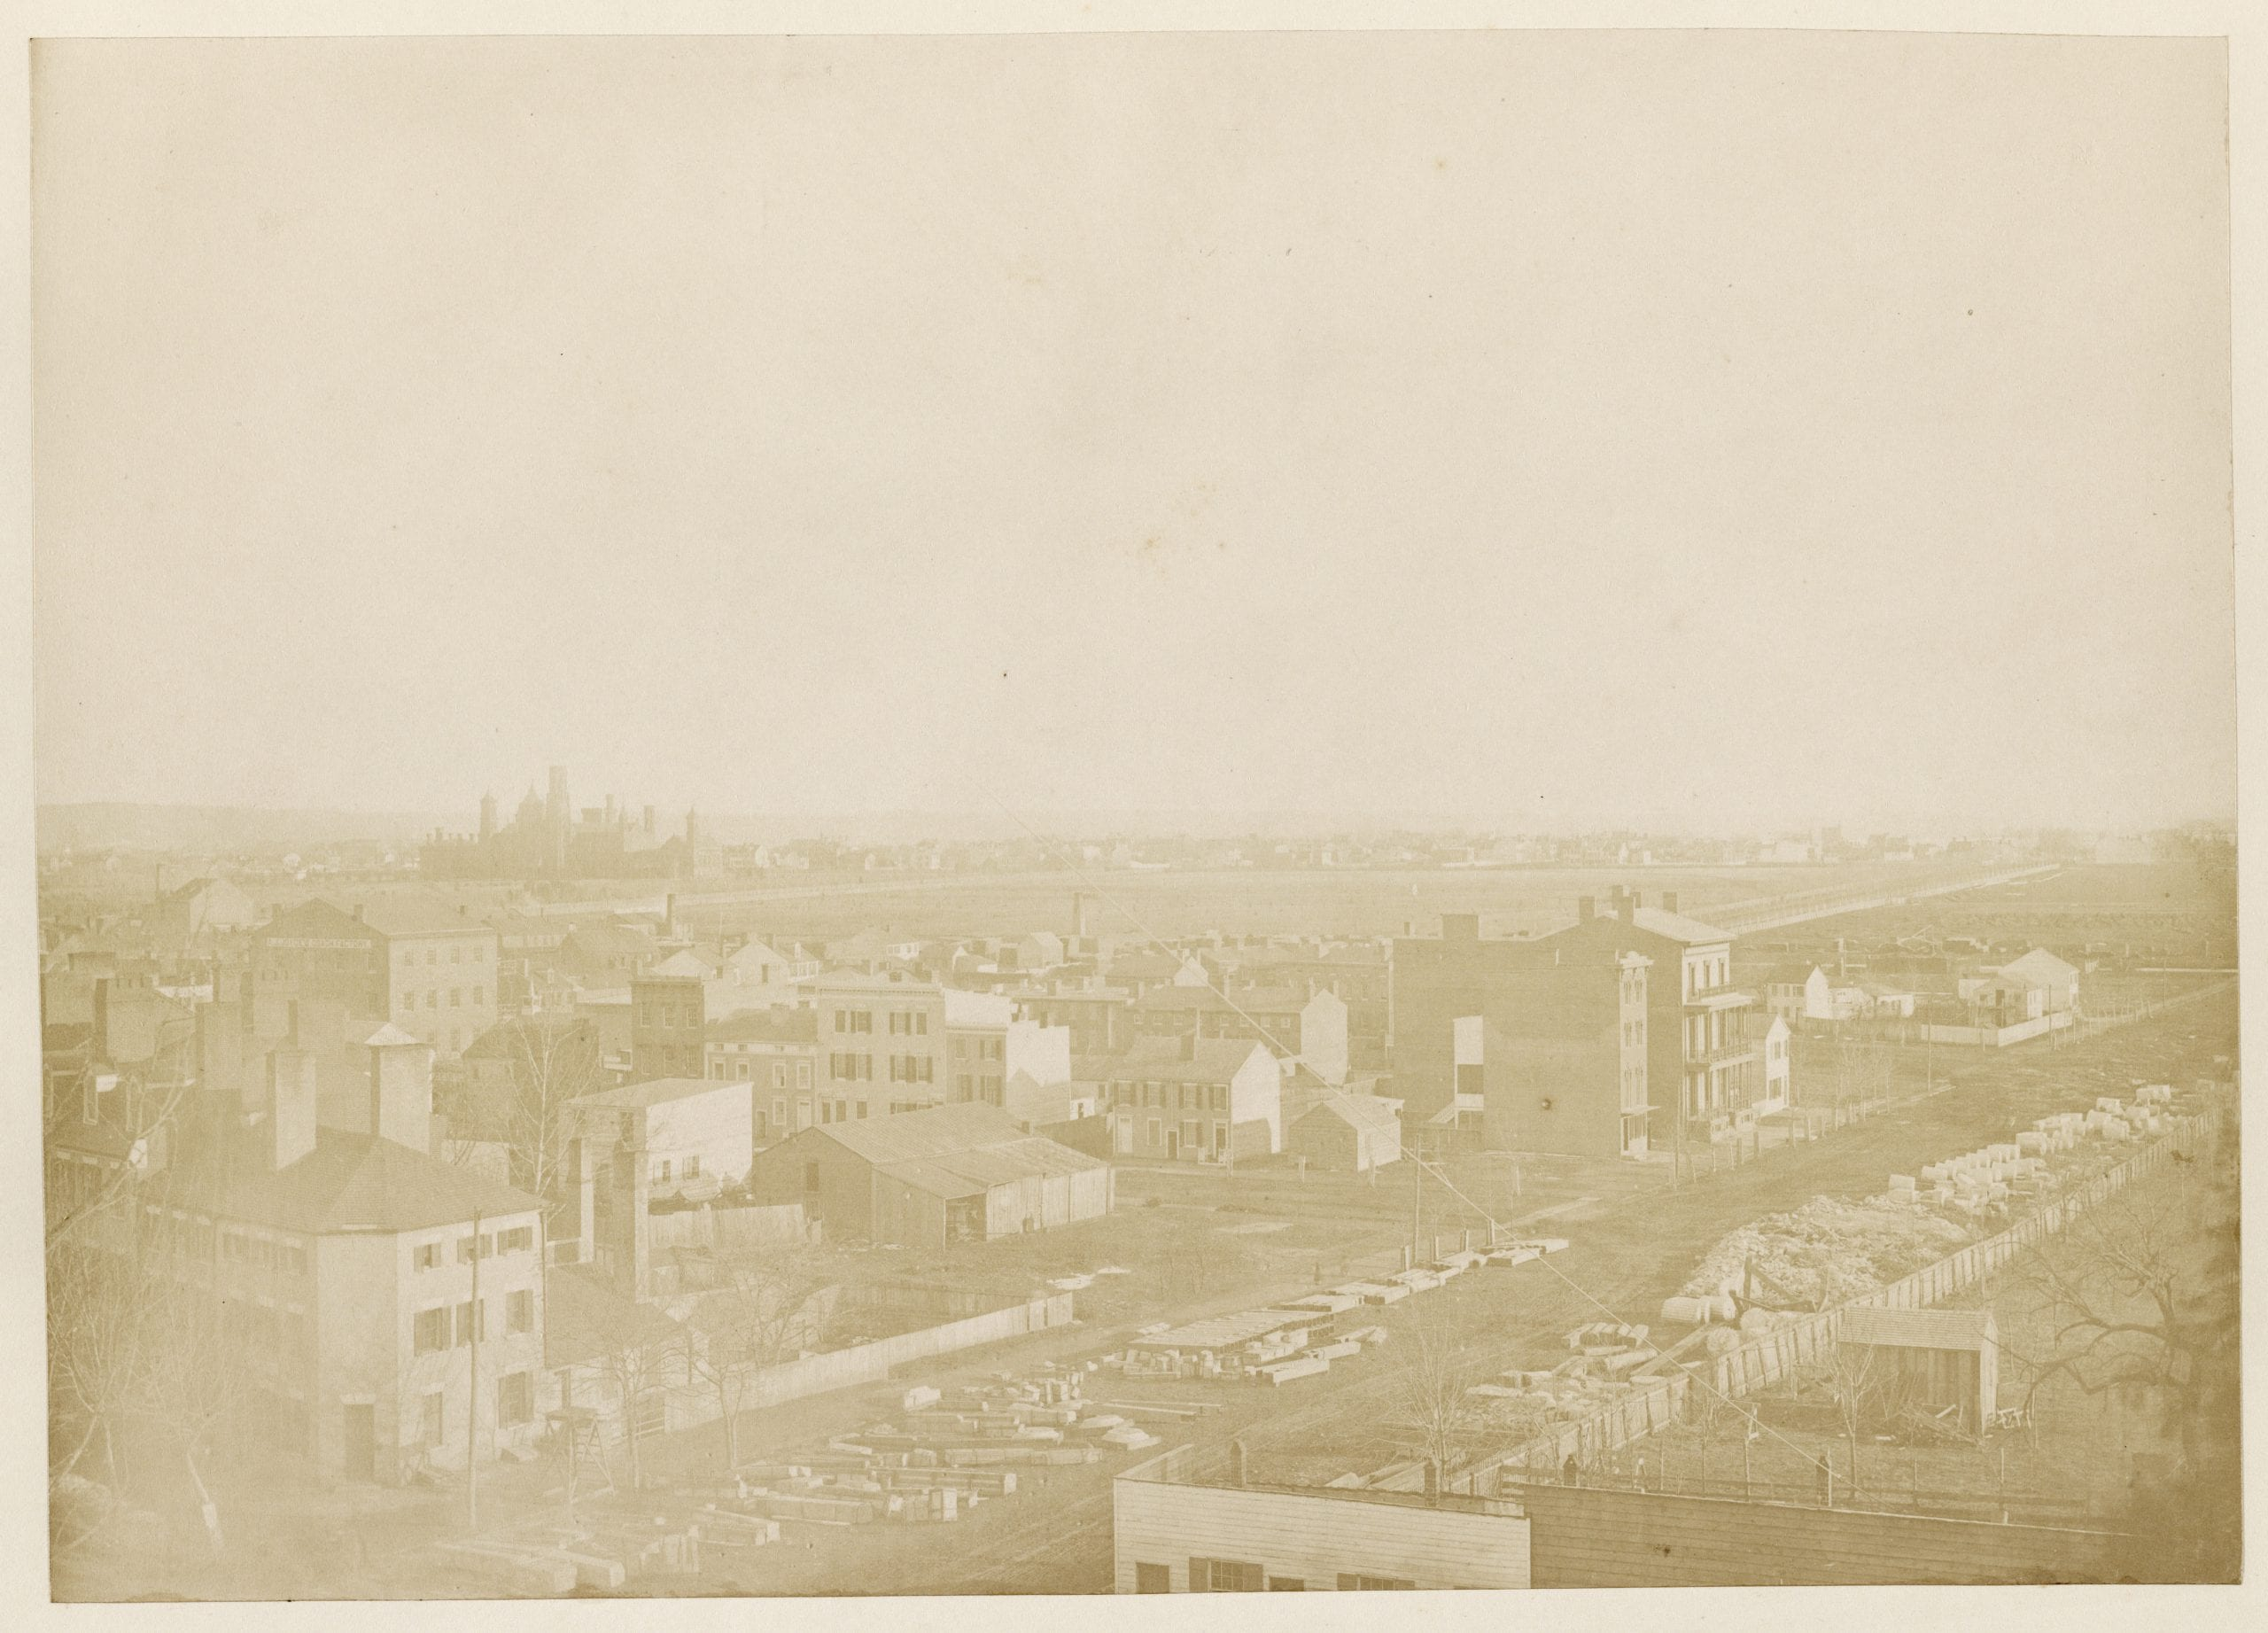 Washington, D.C., view with Smithsonian in the distance